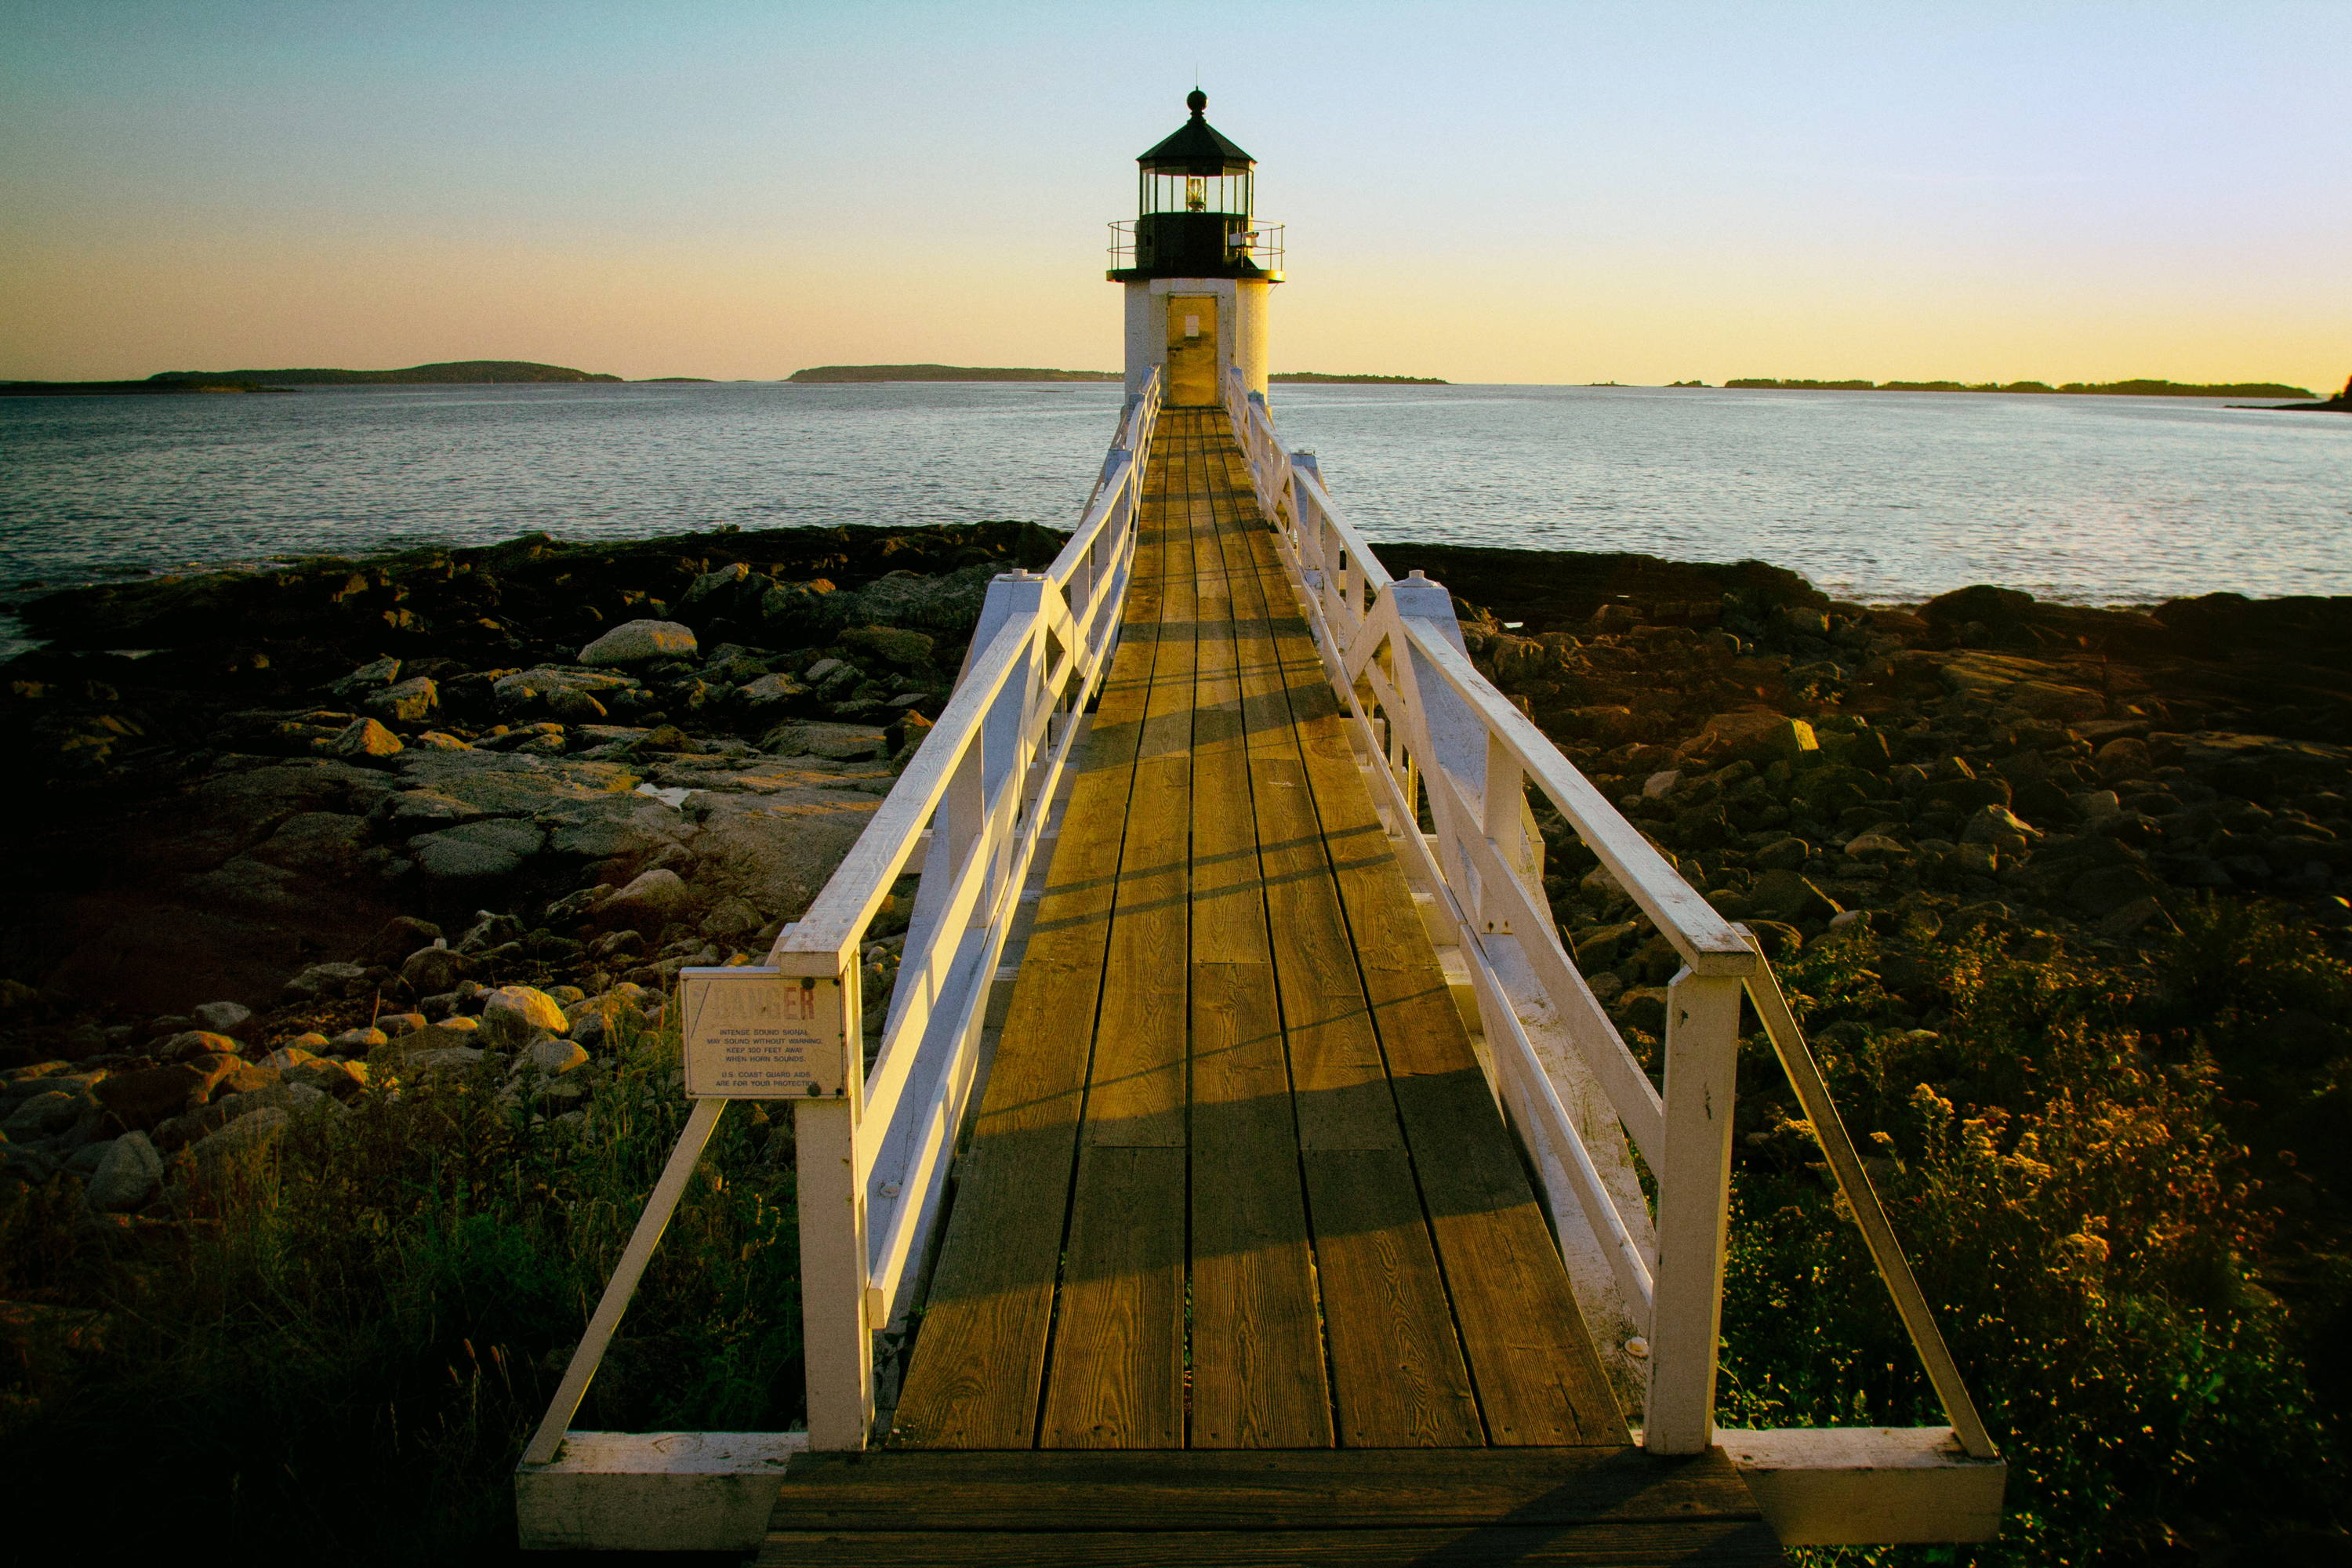 Maine State Parks: Secluded Beaches in Maine. Long dock with white handrails on either side leads to lighthouse on the water.